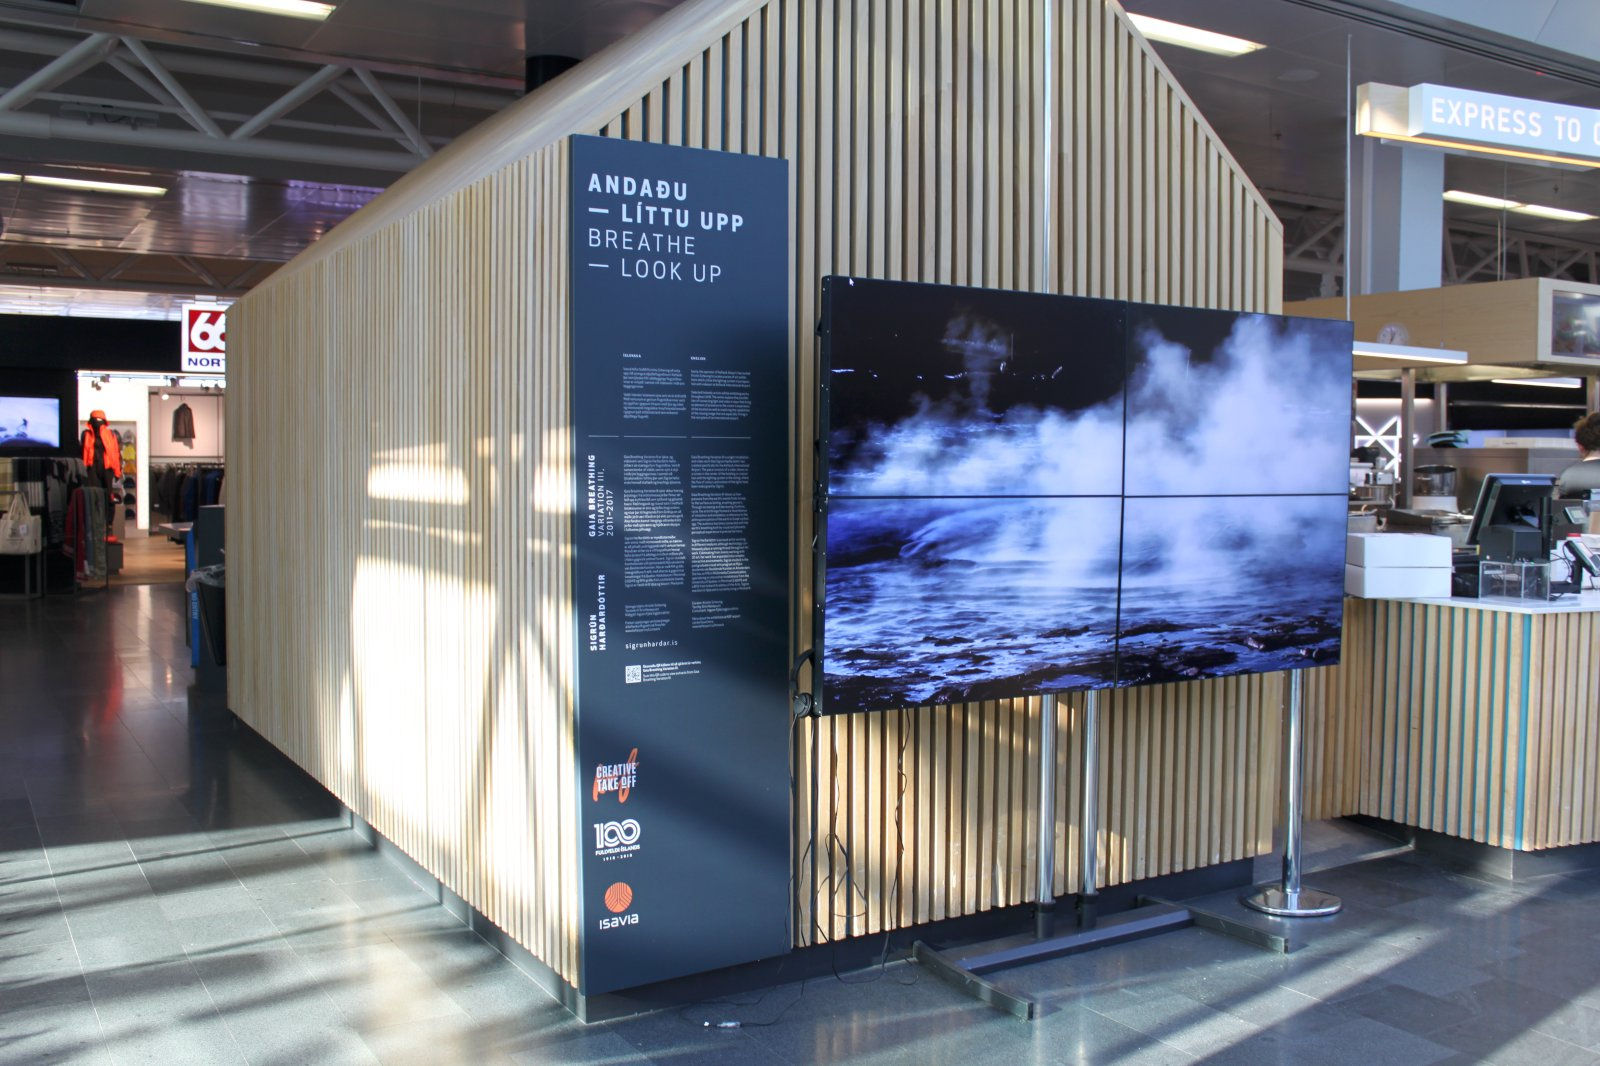 Light and video connected in unique exhibition at Keflavik Airport